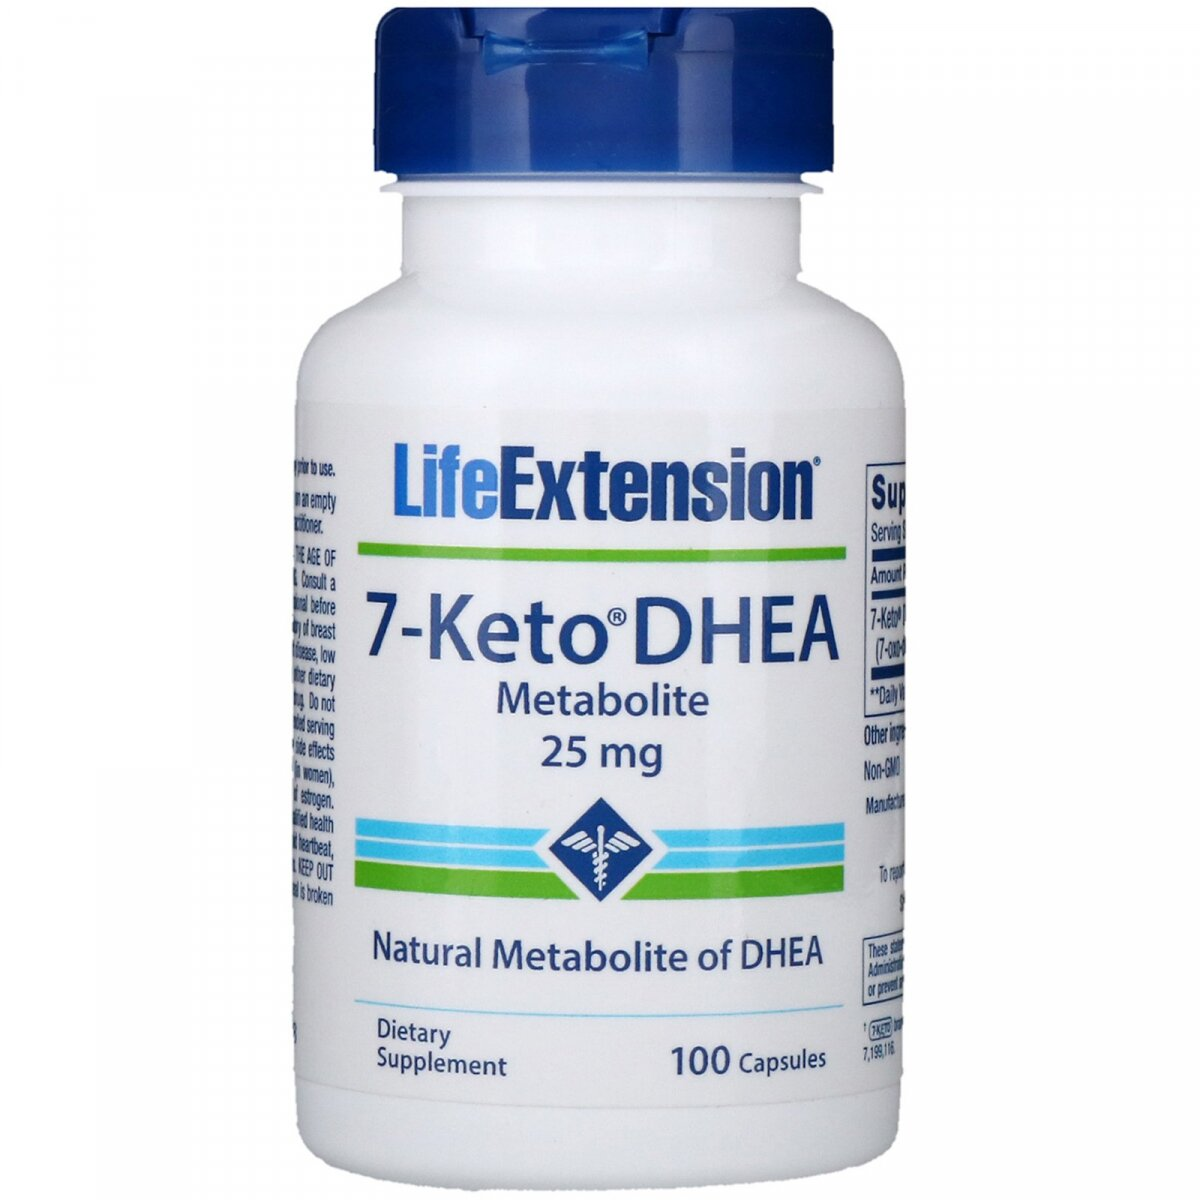 7-Keto DHEA, метаболит, Life Extension, 25 мг, 100 капсул